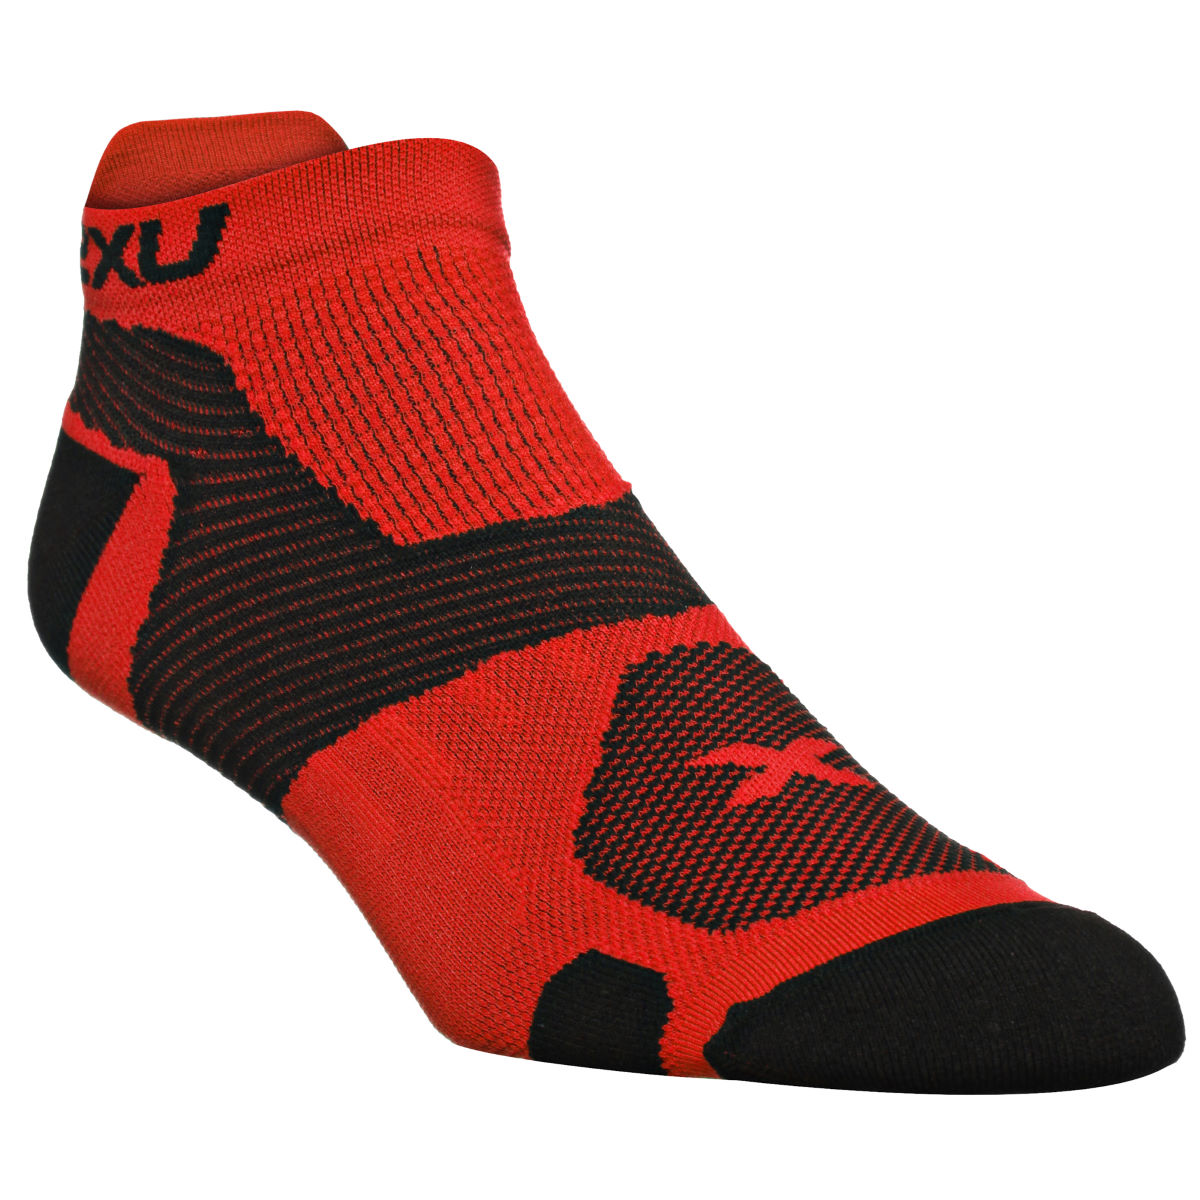 Chaussettes 2XU Race Vector - S Flame Scarlet/Black